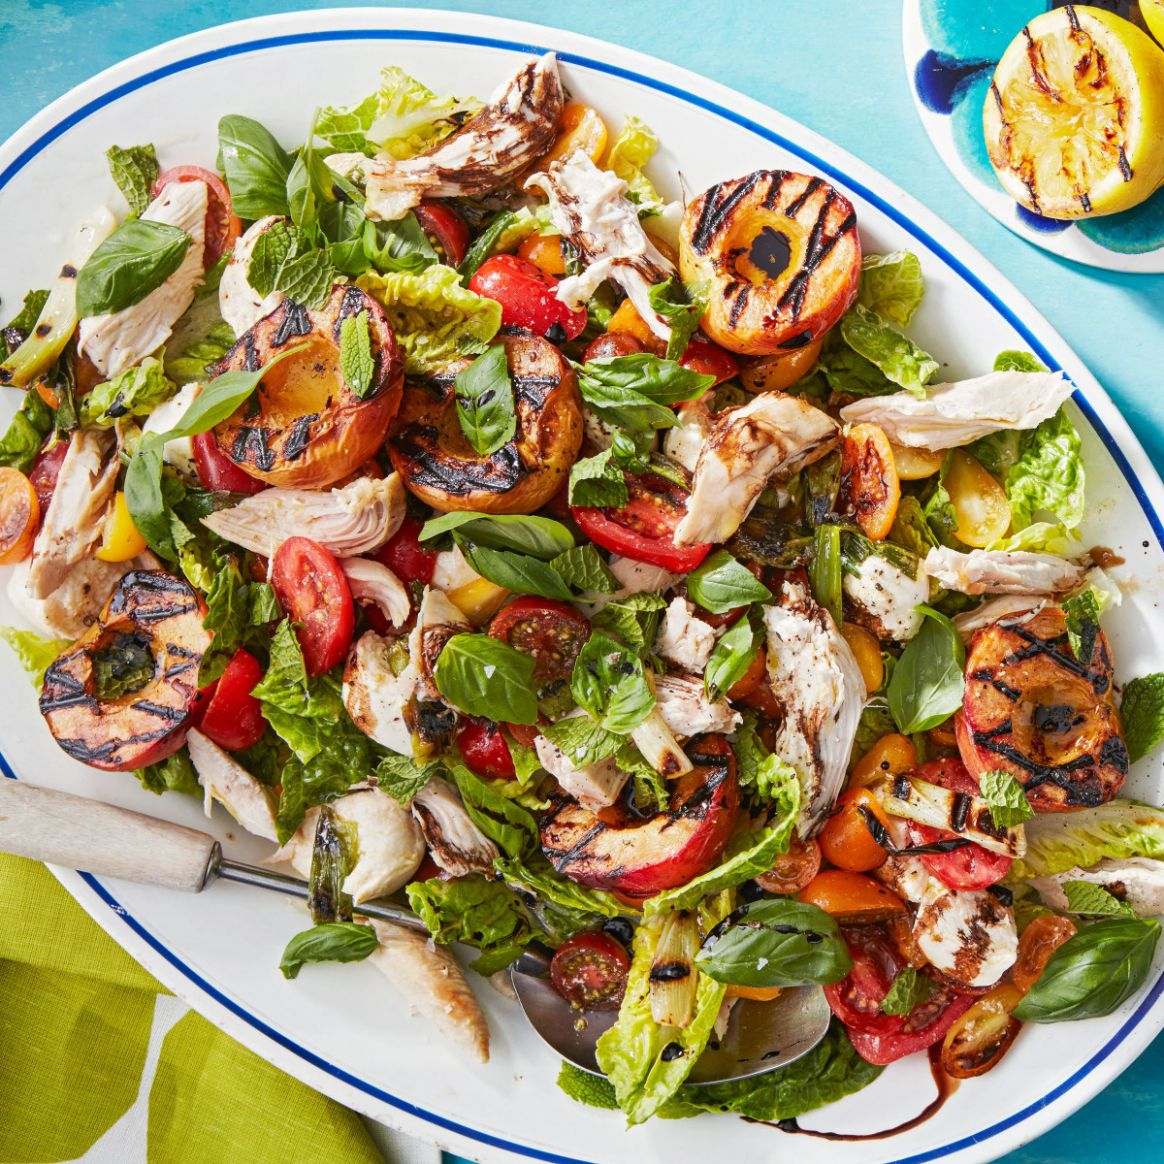 9 Summer Salad Recipes - Rachael Ray In Season - Summer Recipes With Rotisserie Chicken